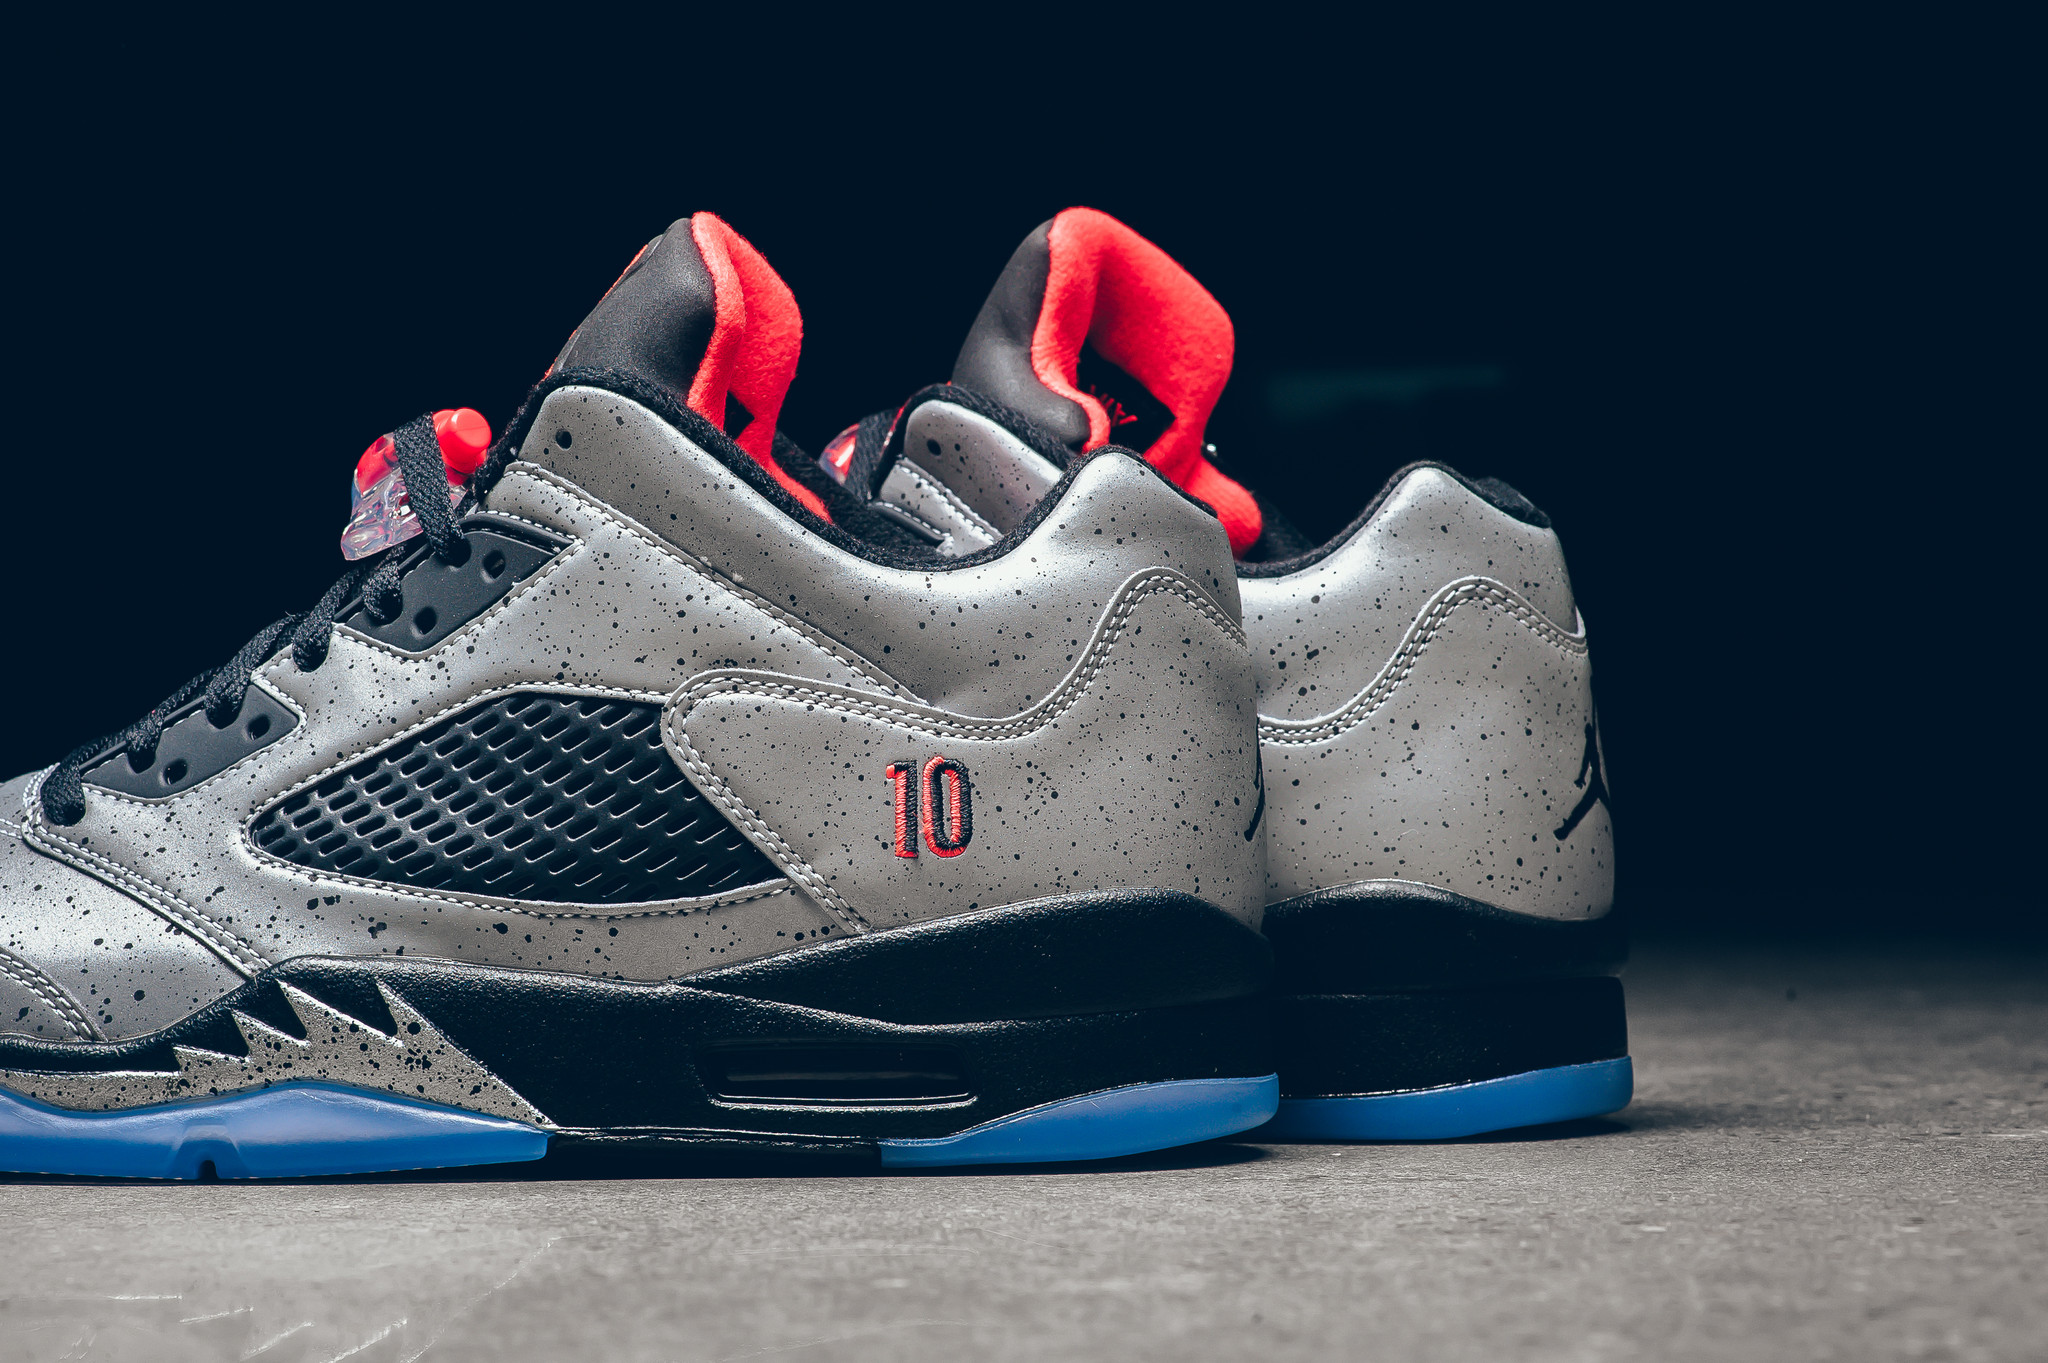 8ad3402eccc019 Air Jordan 5 Retro Low Neymar - Another Look - Air 23 - Air Jordan ...